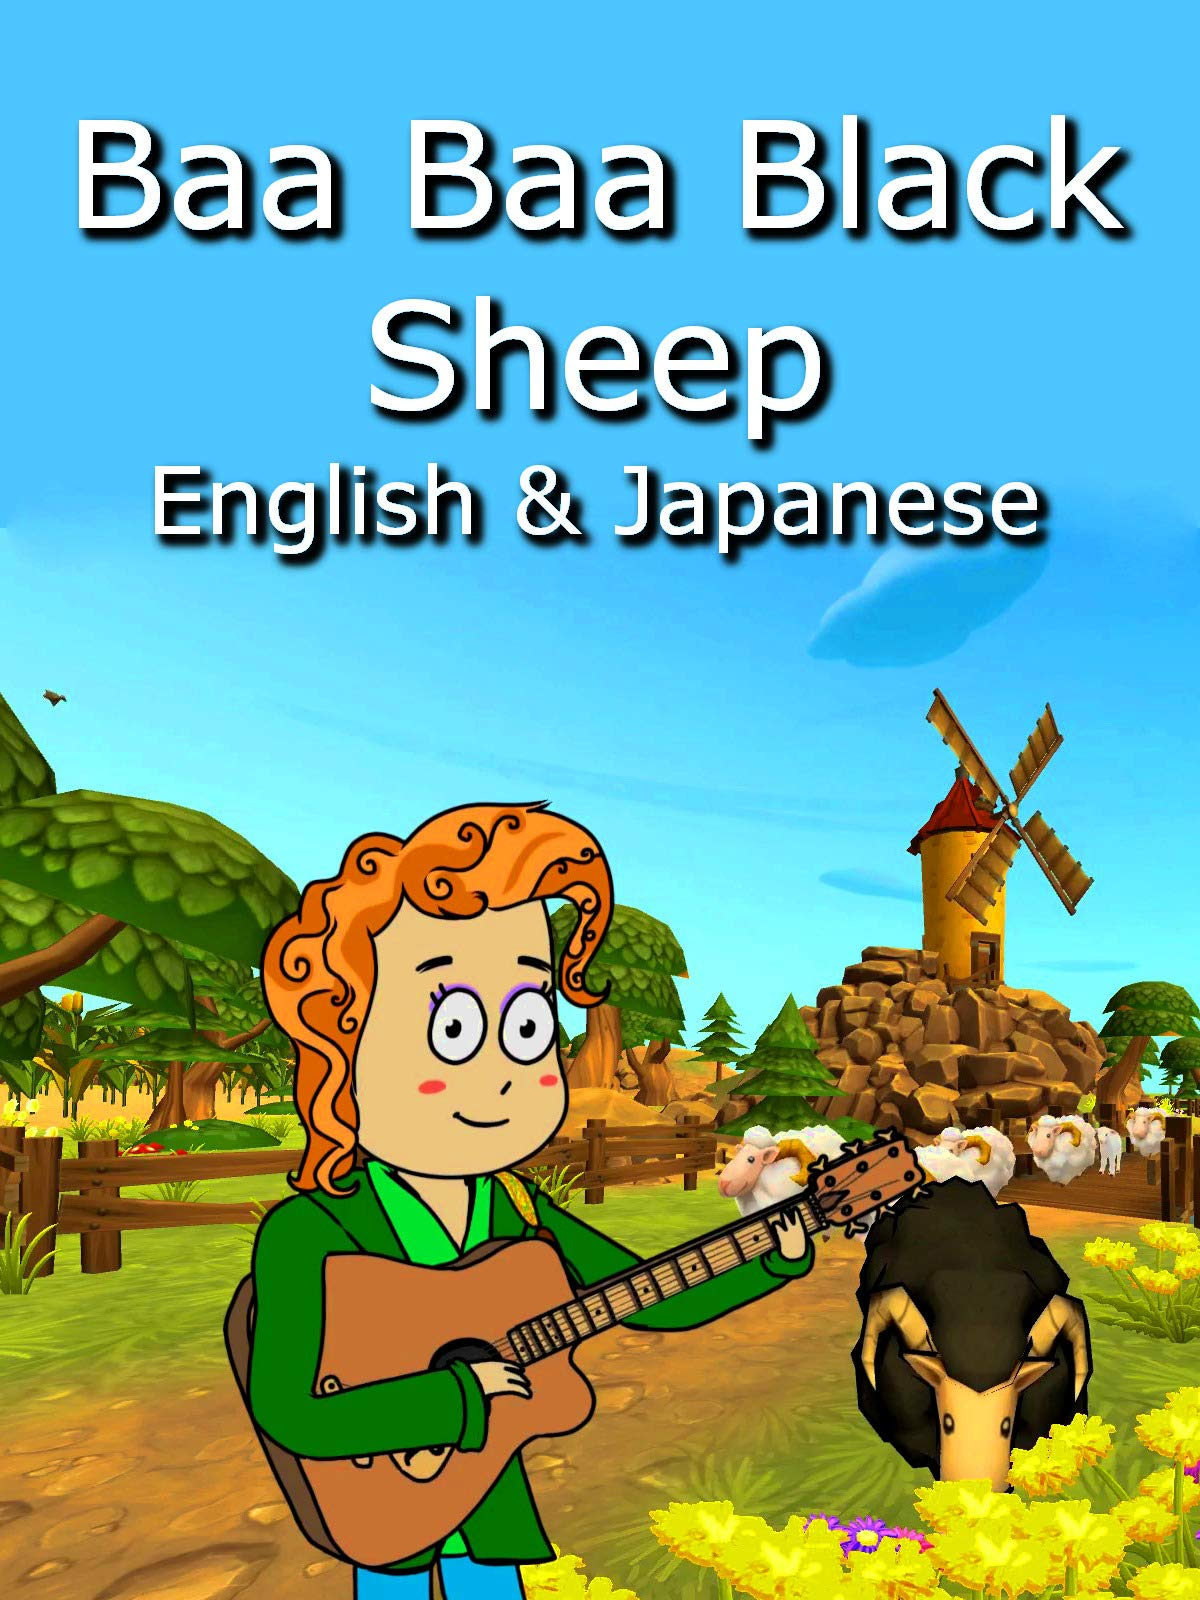 Baa Baa Black Sheep English & Japanese